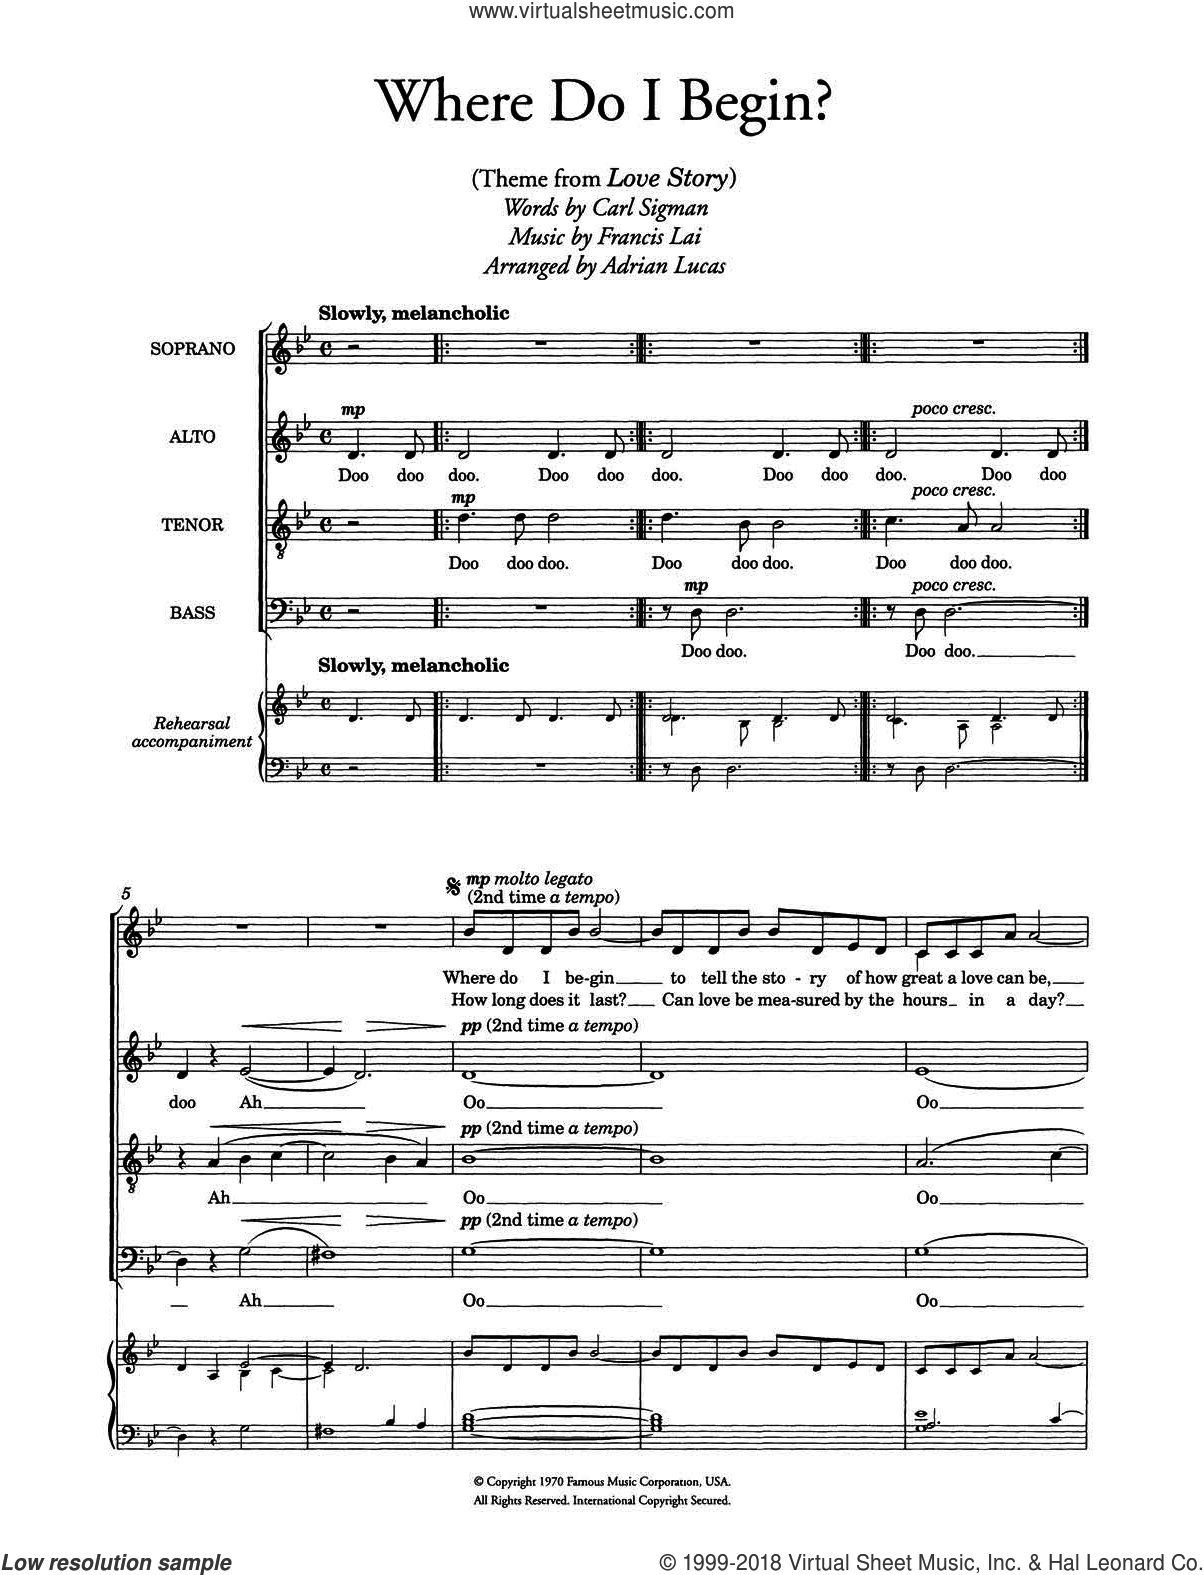 Where Do I Begin (theme from Love Story) (arr. Adrian Lucas) sheet music for choir and piano by Carl Sigman and Francis Lai. Score Image Preview.